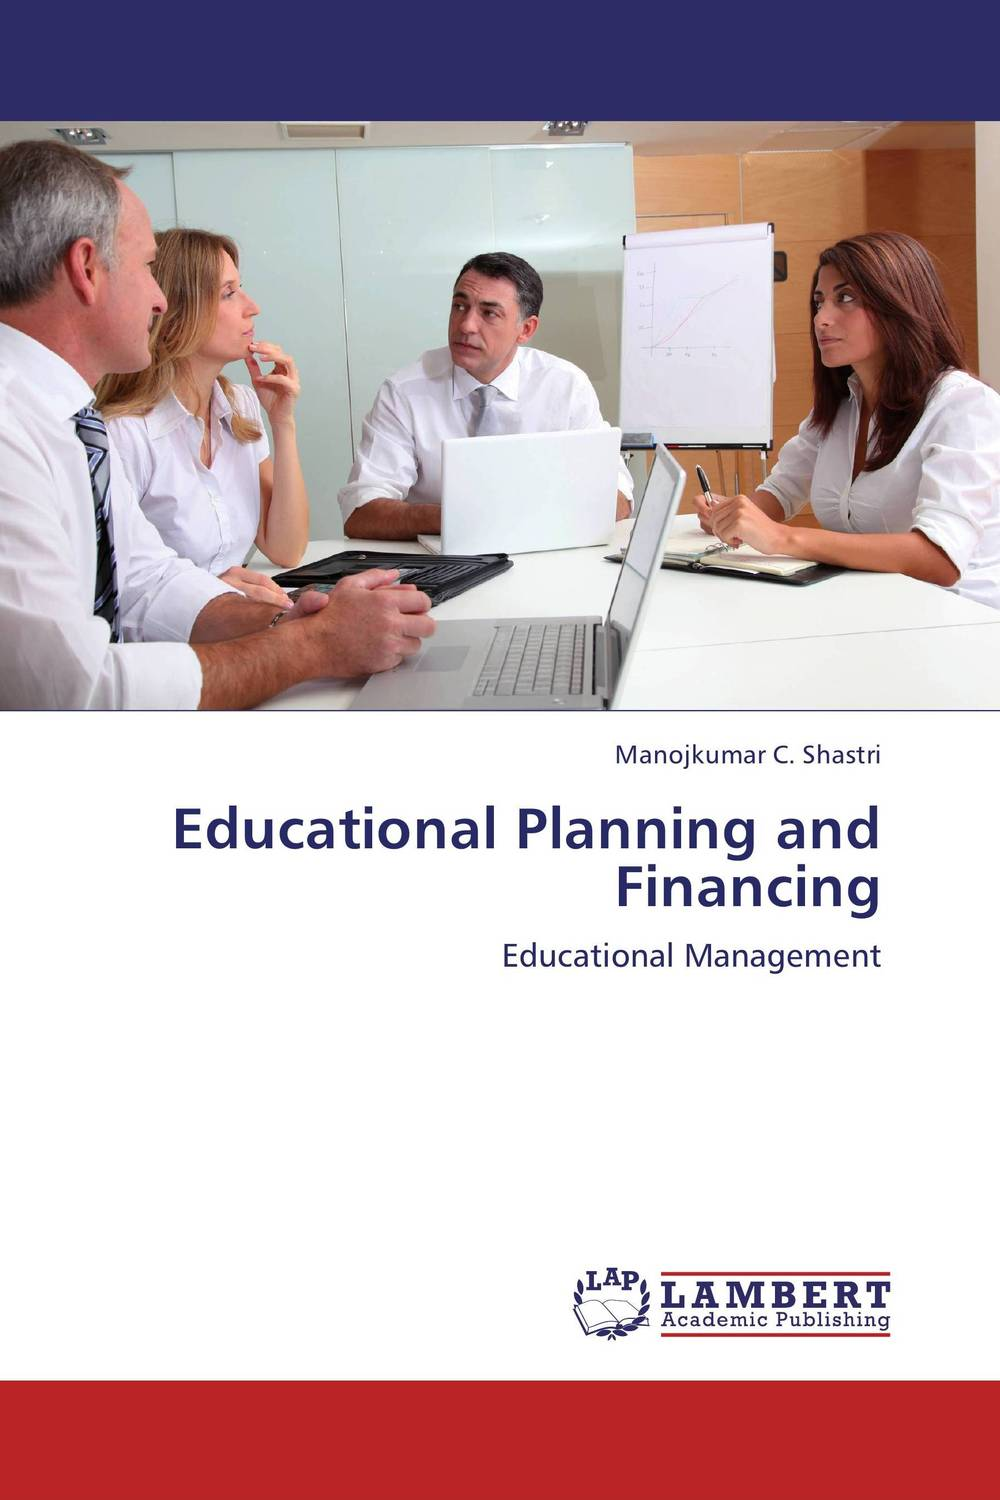 Educational Planning and Financing knowledge management – classic